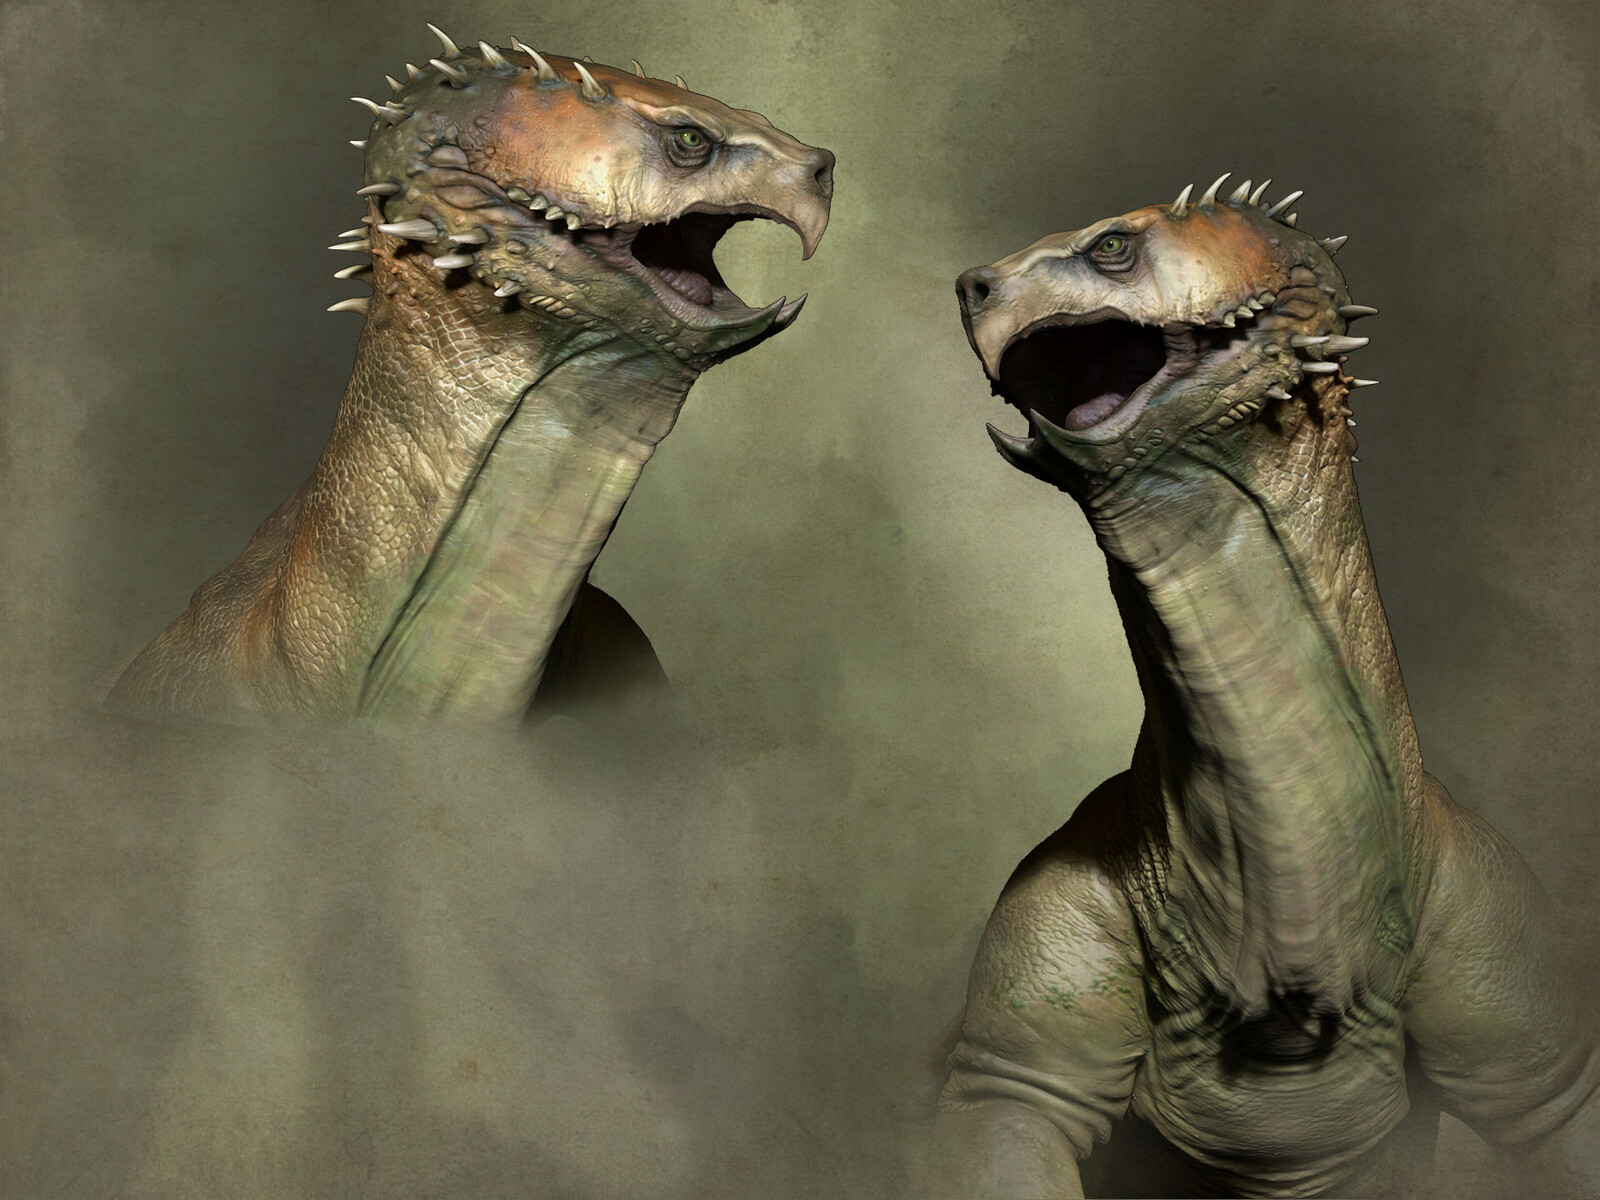 The lower jaw split and horns were to give the creature a more threatening disposition and silhouette.